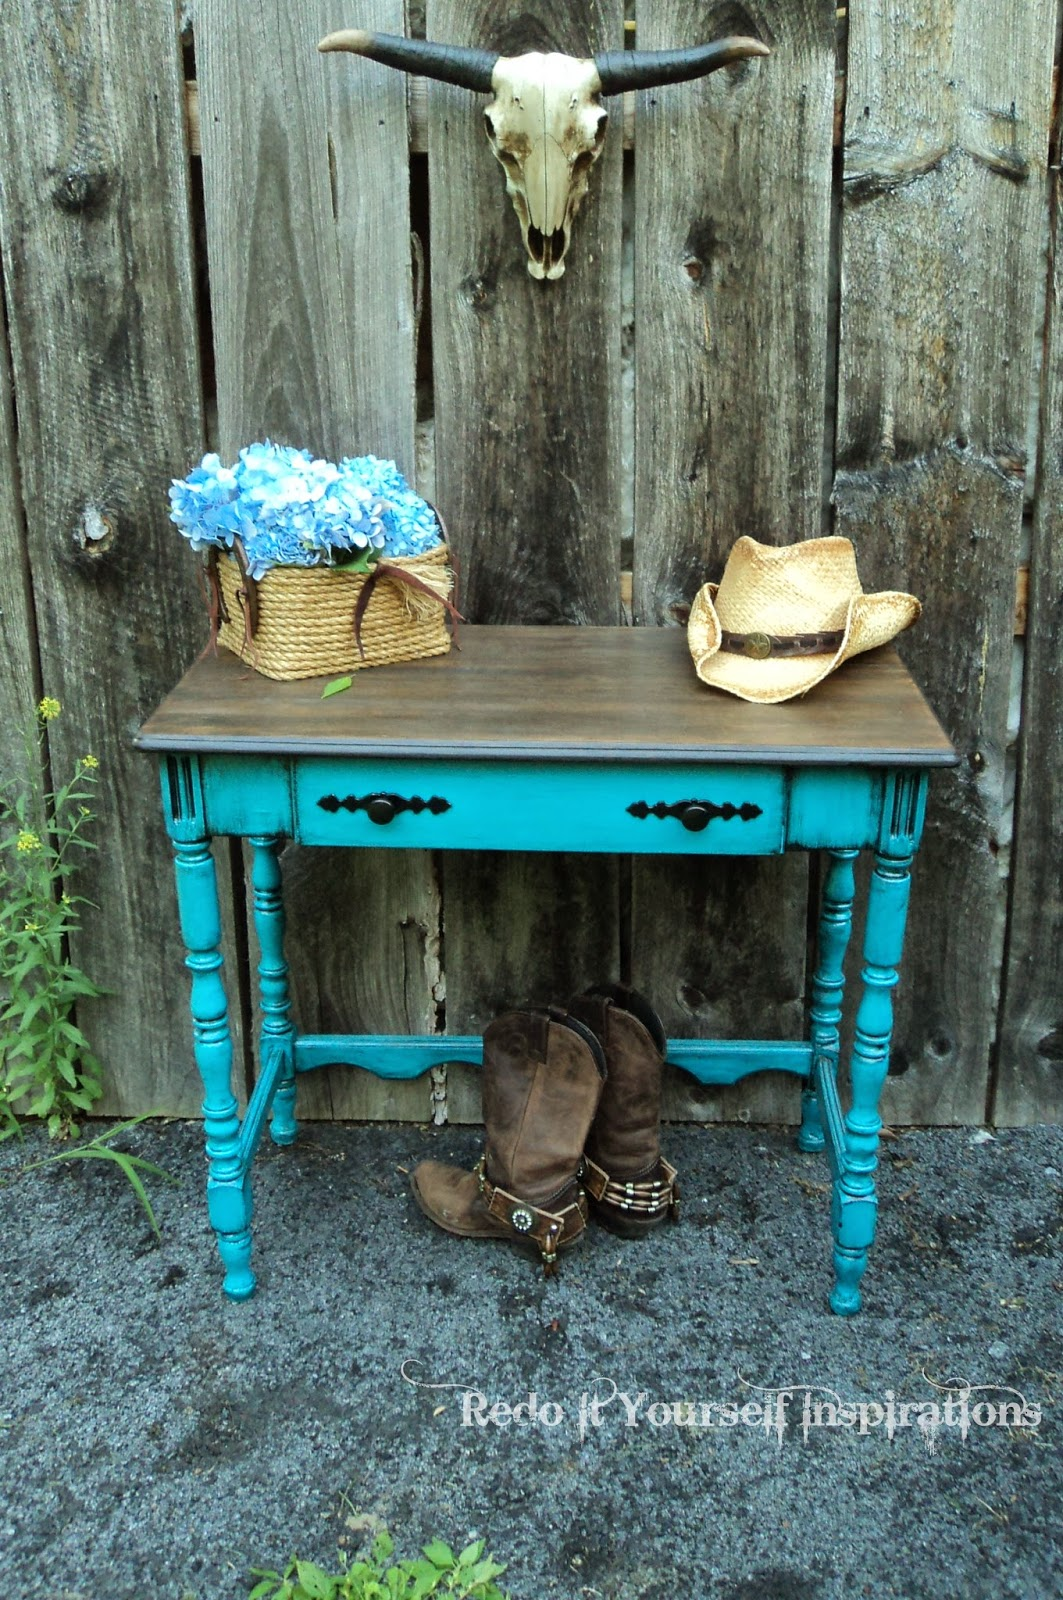 http://redoityourselfinspirations.blogspot.com/2014/01/road-rescue-side-table.html